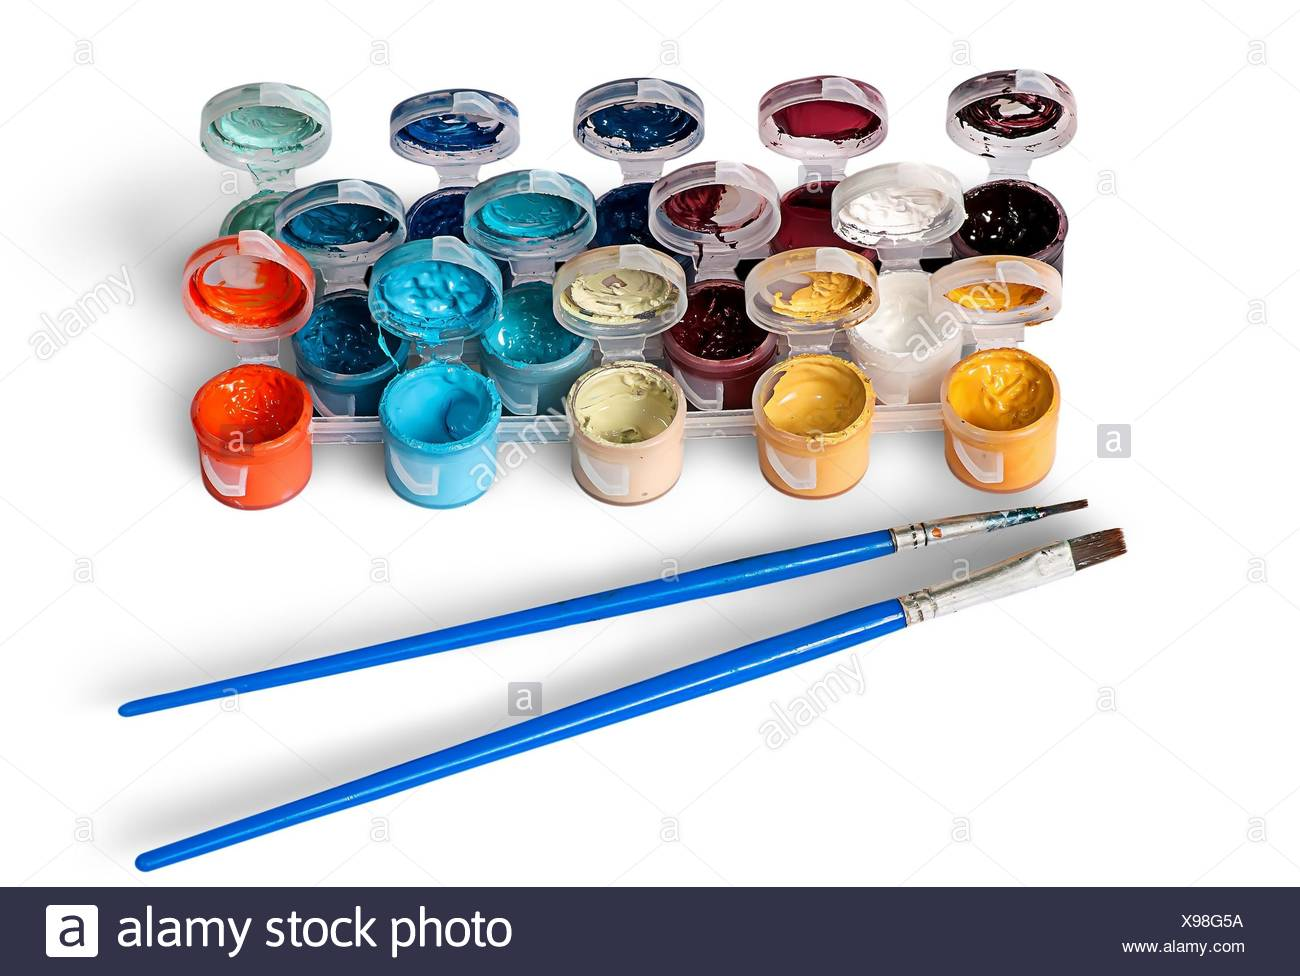 Set of colorful acrylic paints in jars and two brushes isolated on white background. - Stock Image